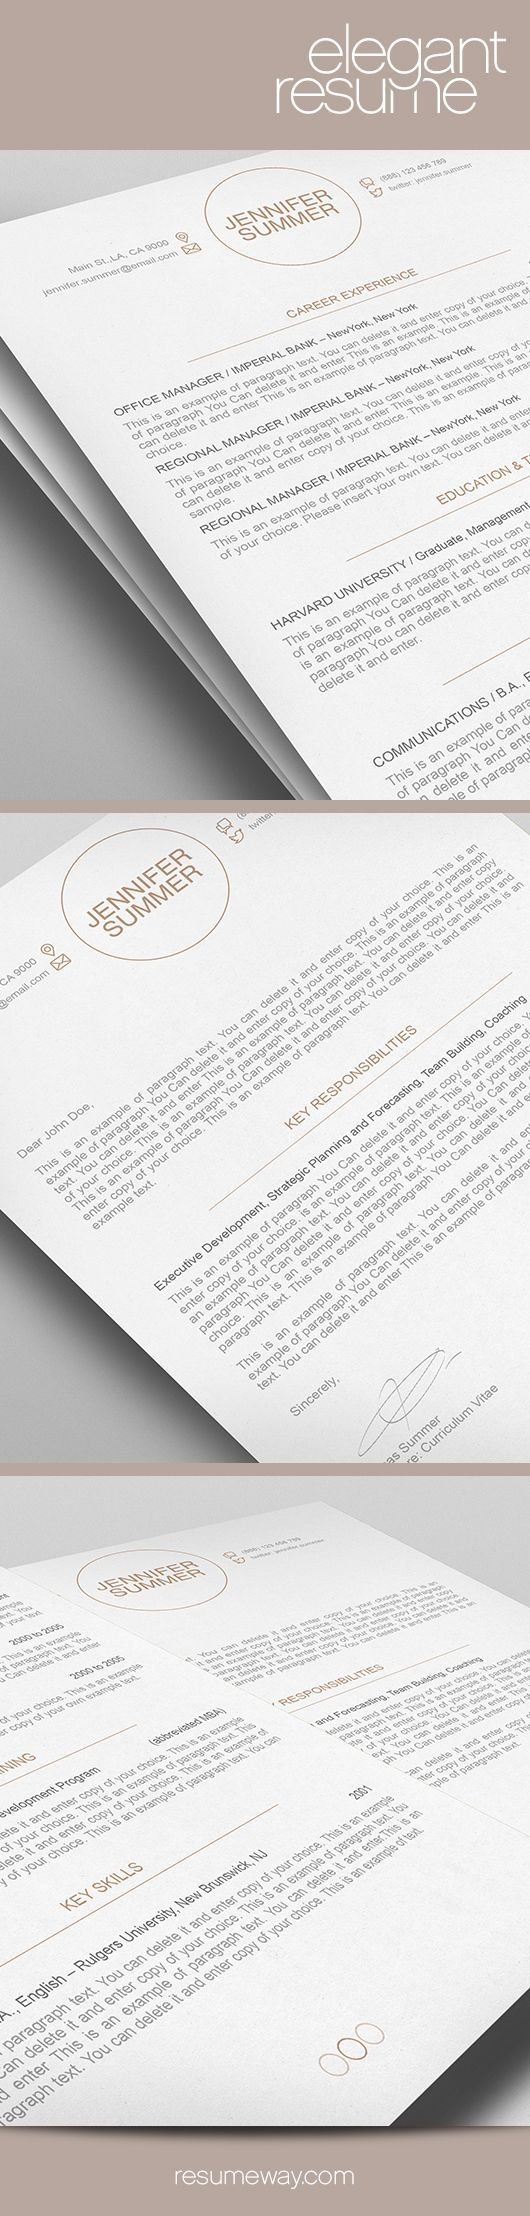 25 best resume/cv images on Pinterest | Page layout, Resume ...